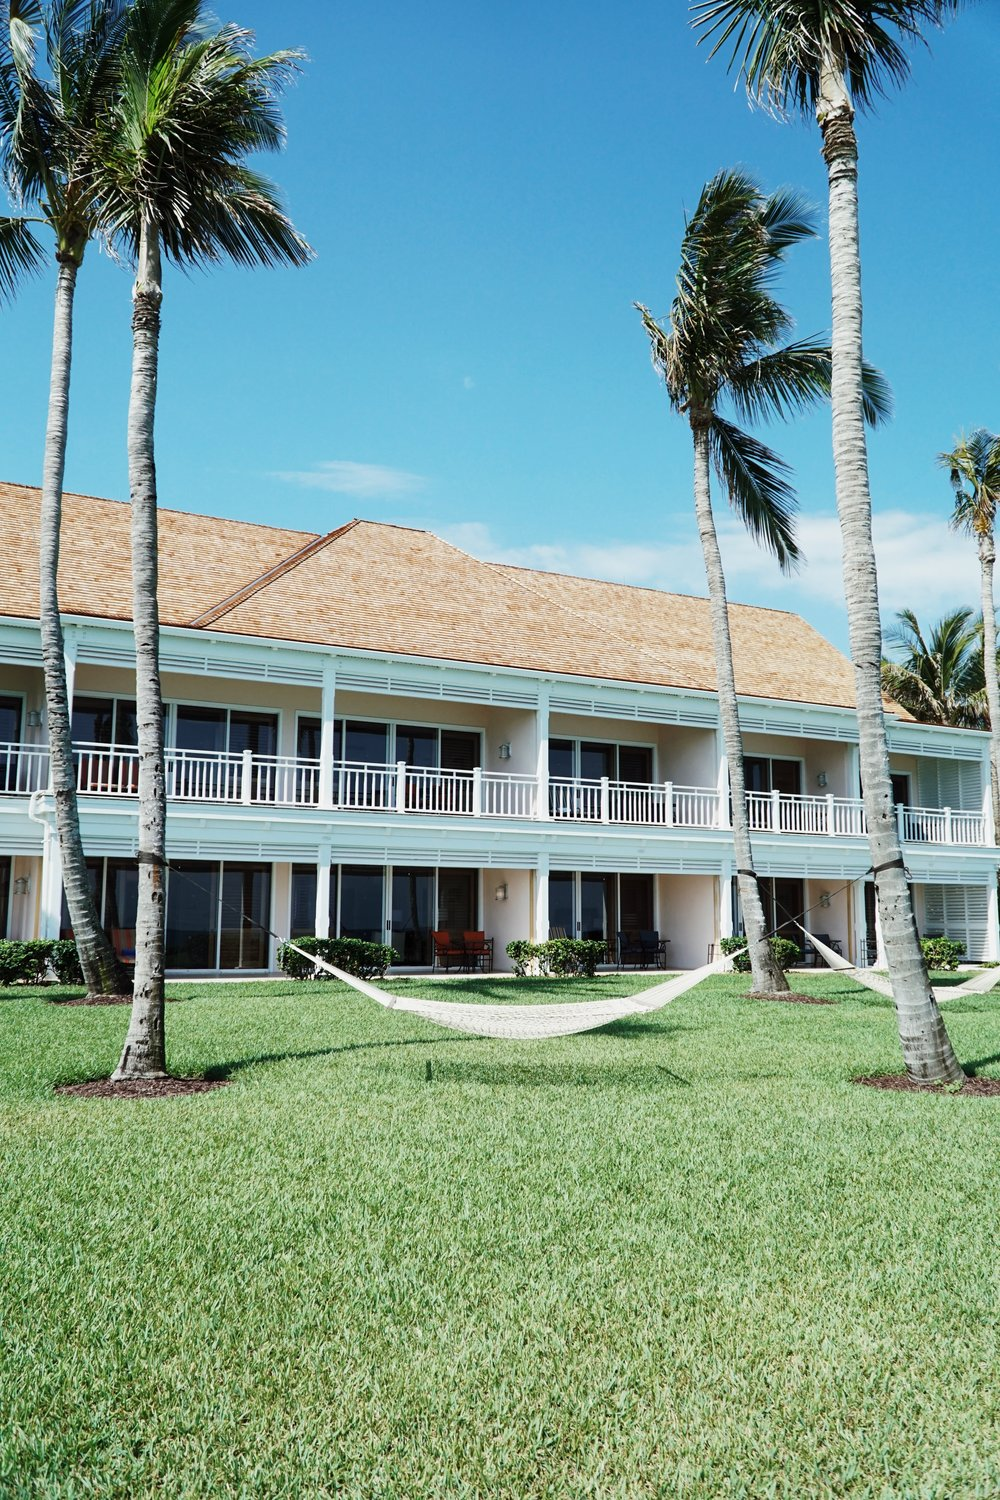 The Crescent Wing of the One&Only Ocean Club in the Bahamas taken by Julia Friedman